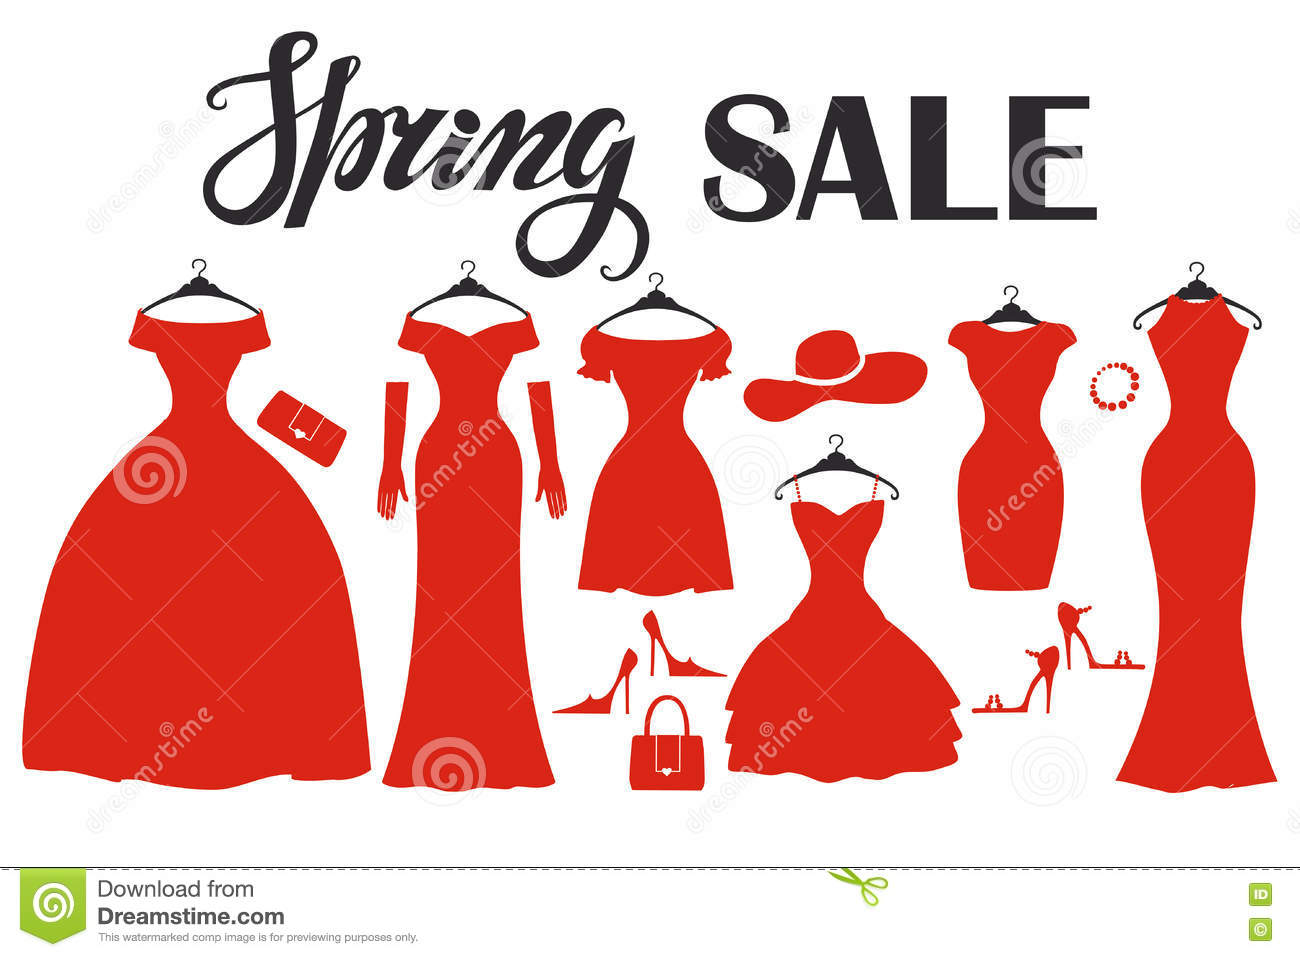 73b4906da27 Red Party Dresses Silhouette.Fashion Sale.Spring Stock Vector ...